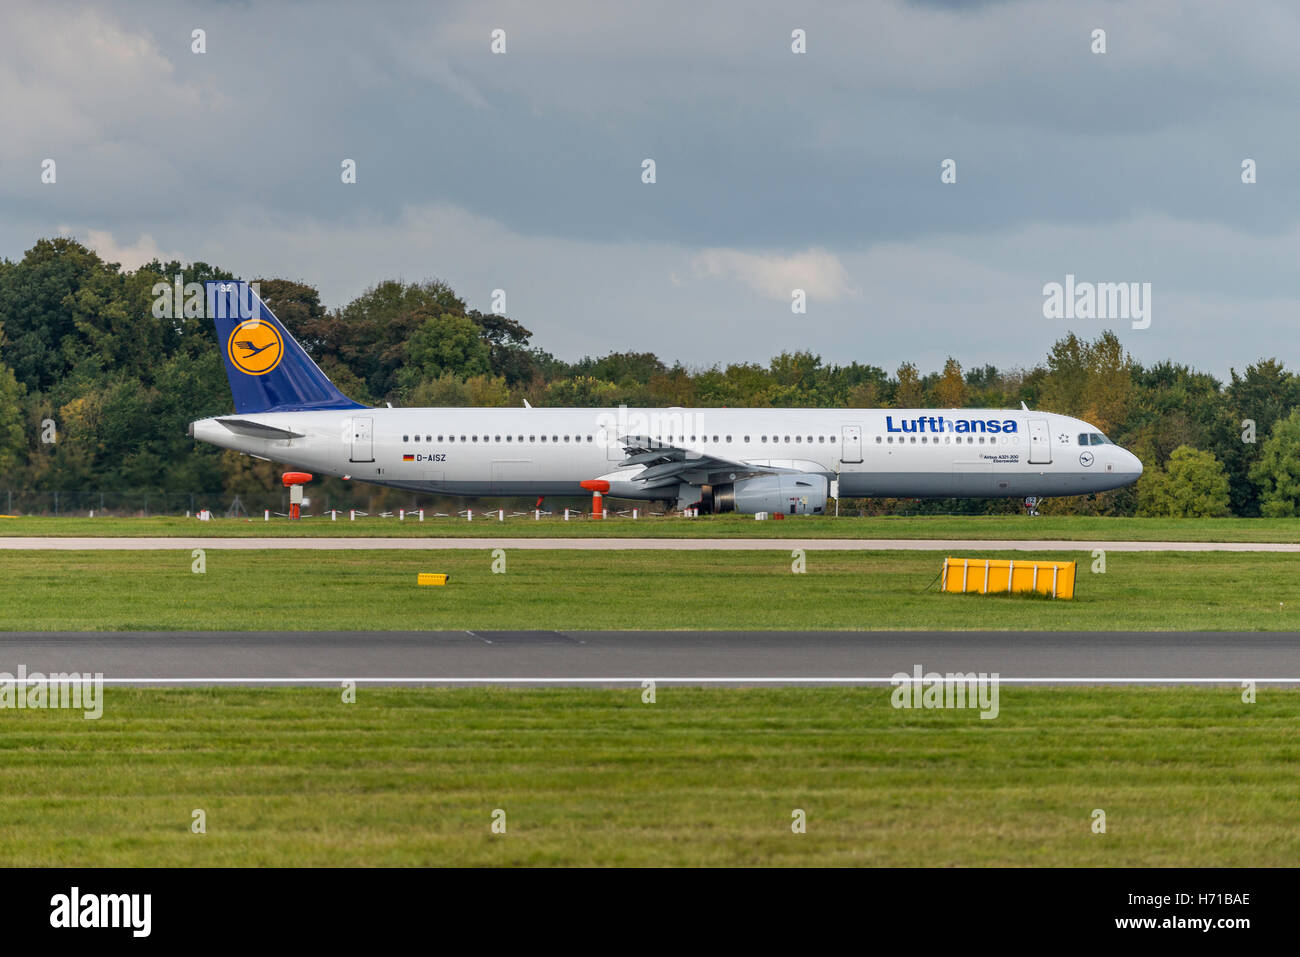 Airbus A320-214 - 5557 D-AIZS Lufthansa Manchester Airport England. - Stock Image